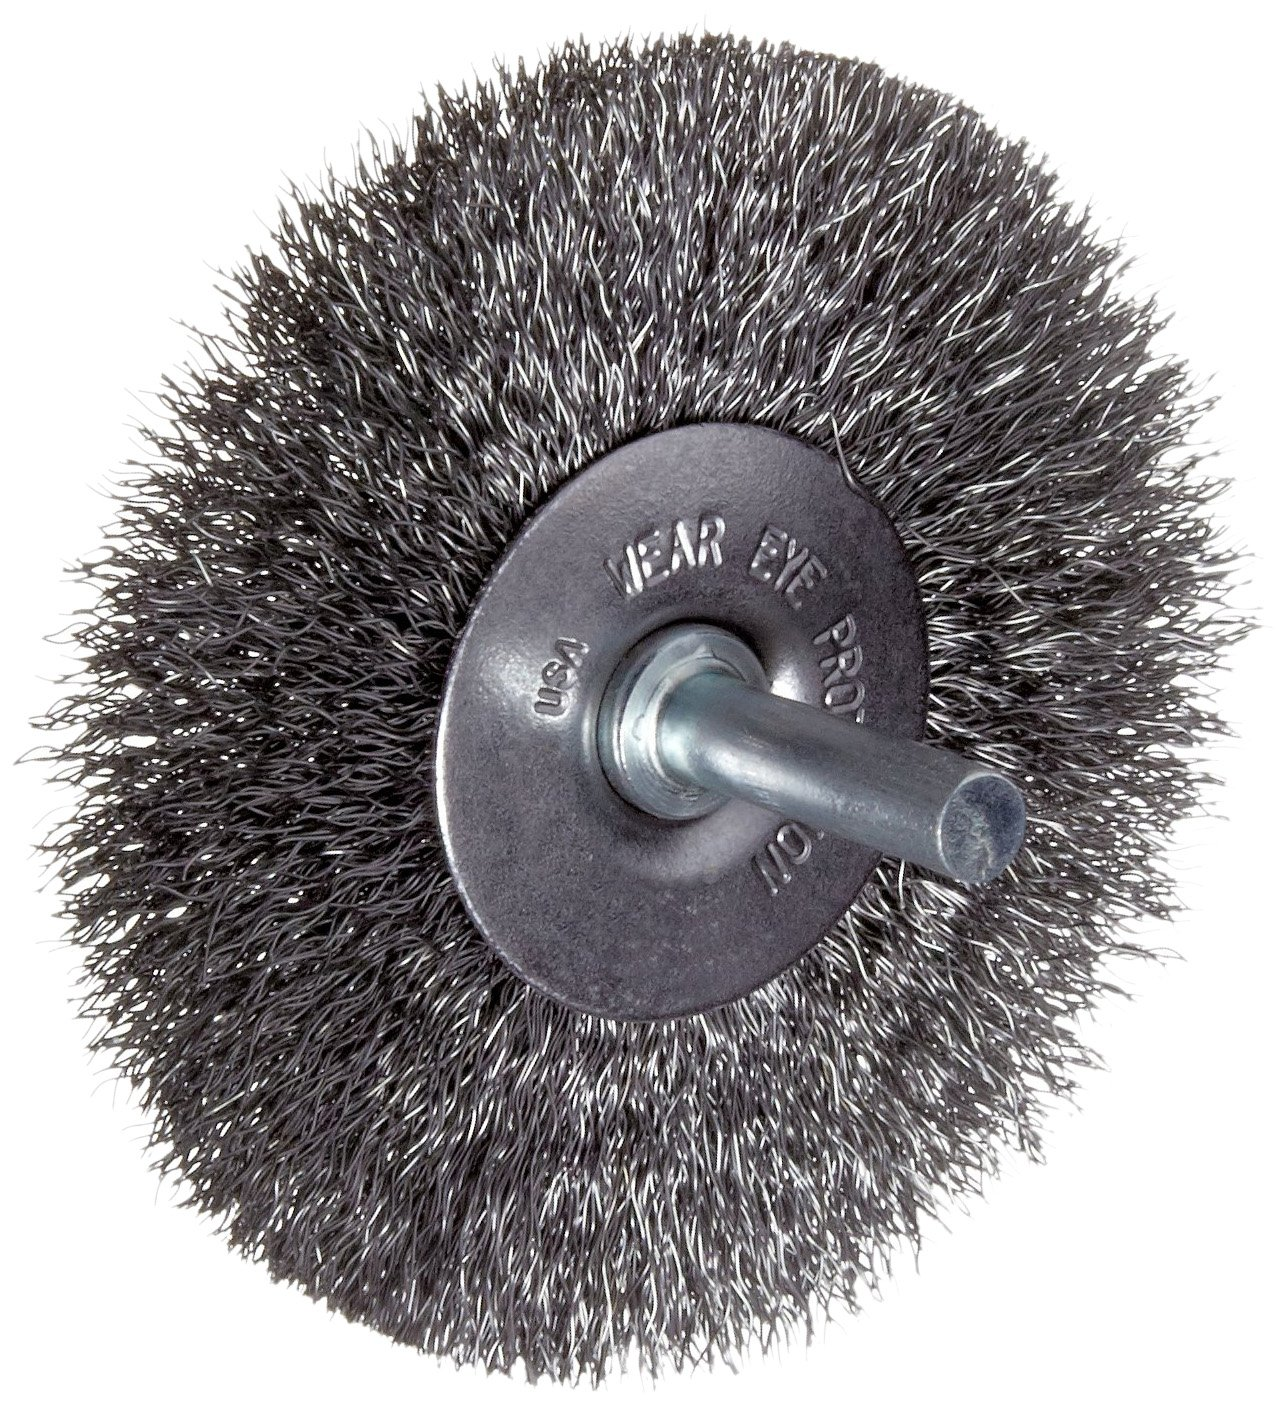 Weiler Vortec Pro Wire Wheel Brush, Round Shank, Carbon Steel, Crimped Wire, 3' Diameter, 0.012' Wire Diameter, 1/4' Shank, 13/16' Bristle Length, 20000 rpm